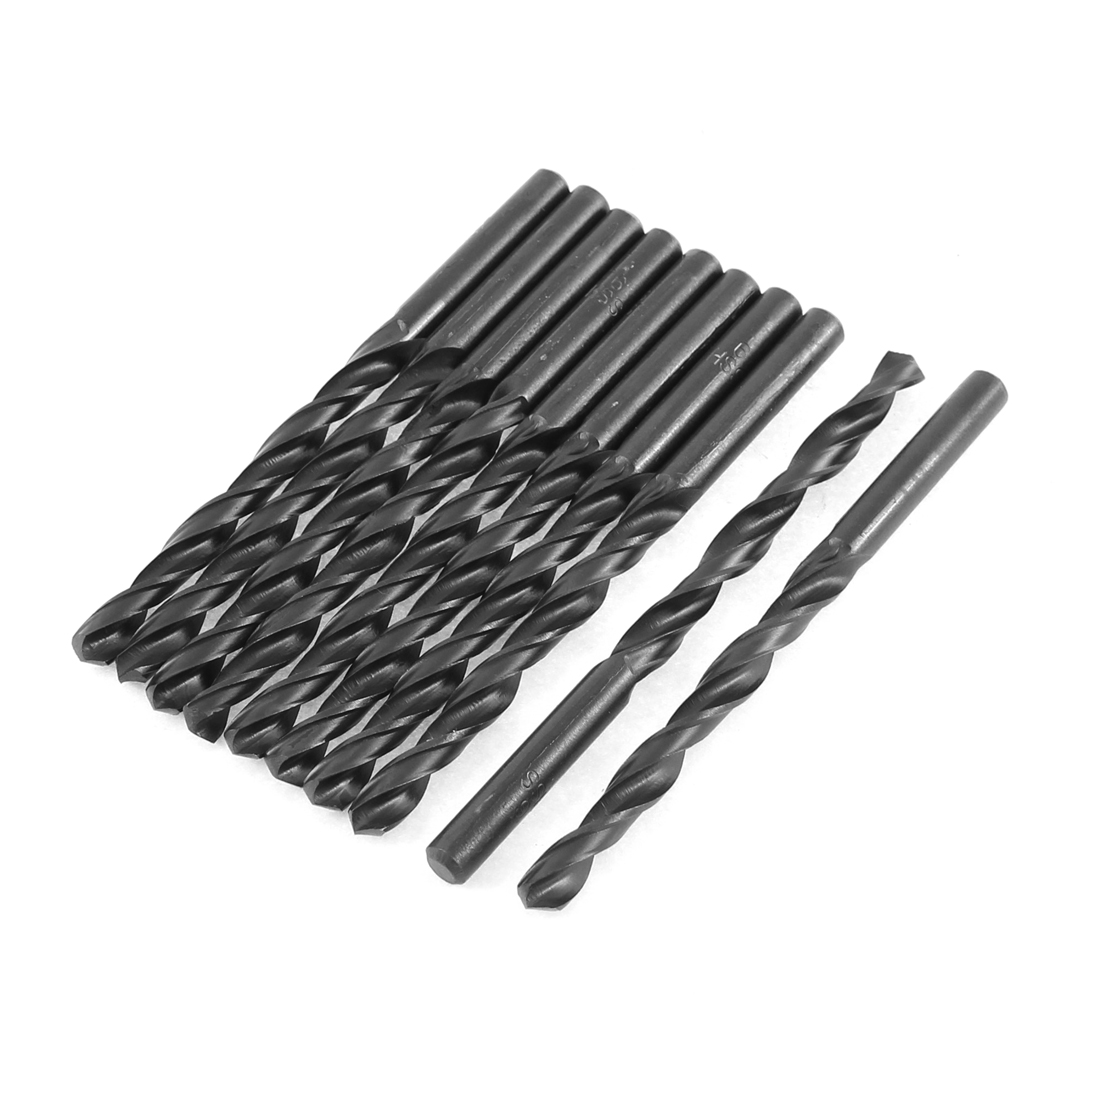 Подробнее о Uxcell 10Pcs 6Mm 7Mm 8Mm Cutting Dia 90Mm Length Hss Straight Shank Twist Drill Bit Black Length . | 101mm | 102mm | 106mm | uxcell 8mm shank diameter iron cutting 5mm twist dril bit hss hole saw tool